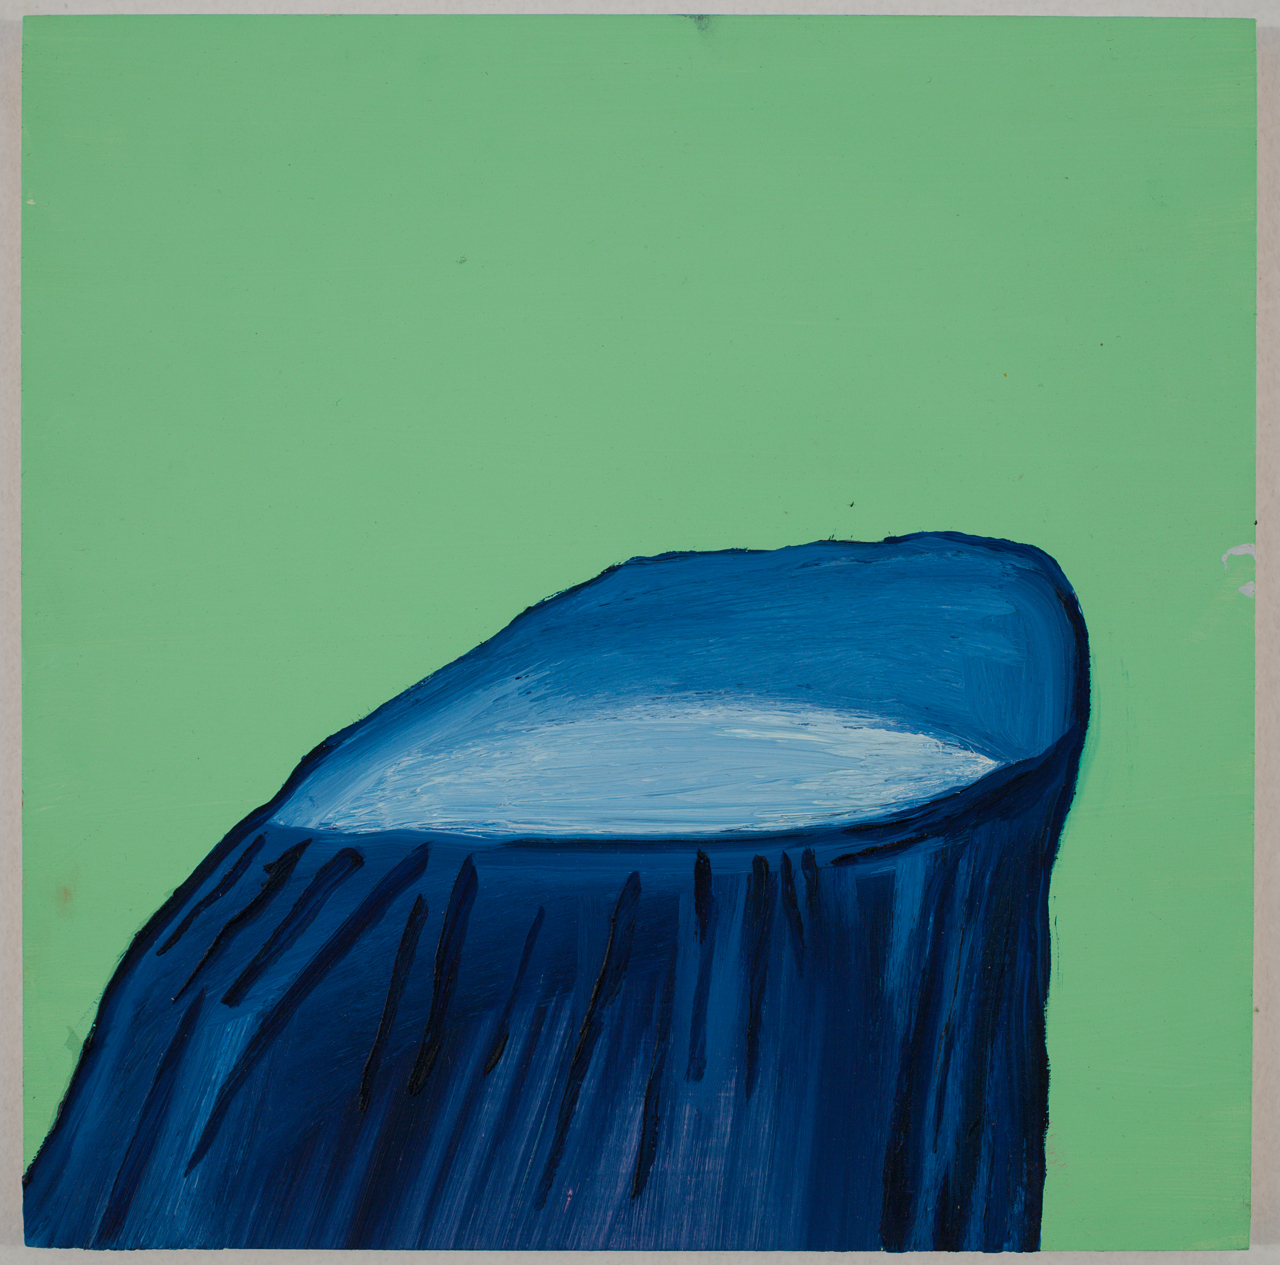 Abstract Green Stump / oil on wood / 10 inches by 10 inches / 2013